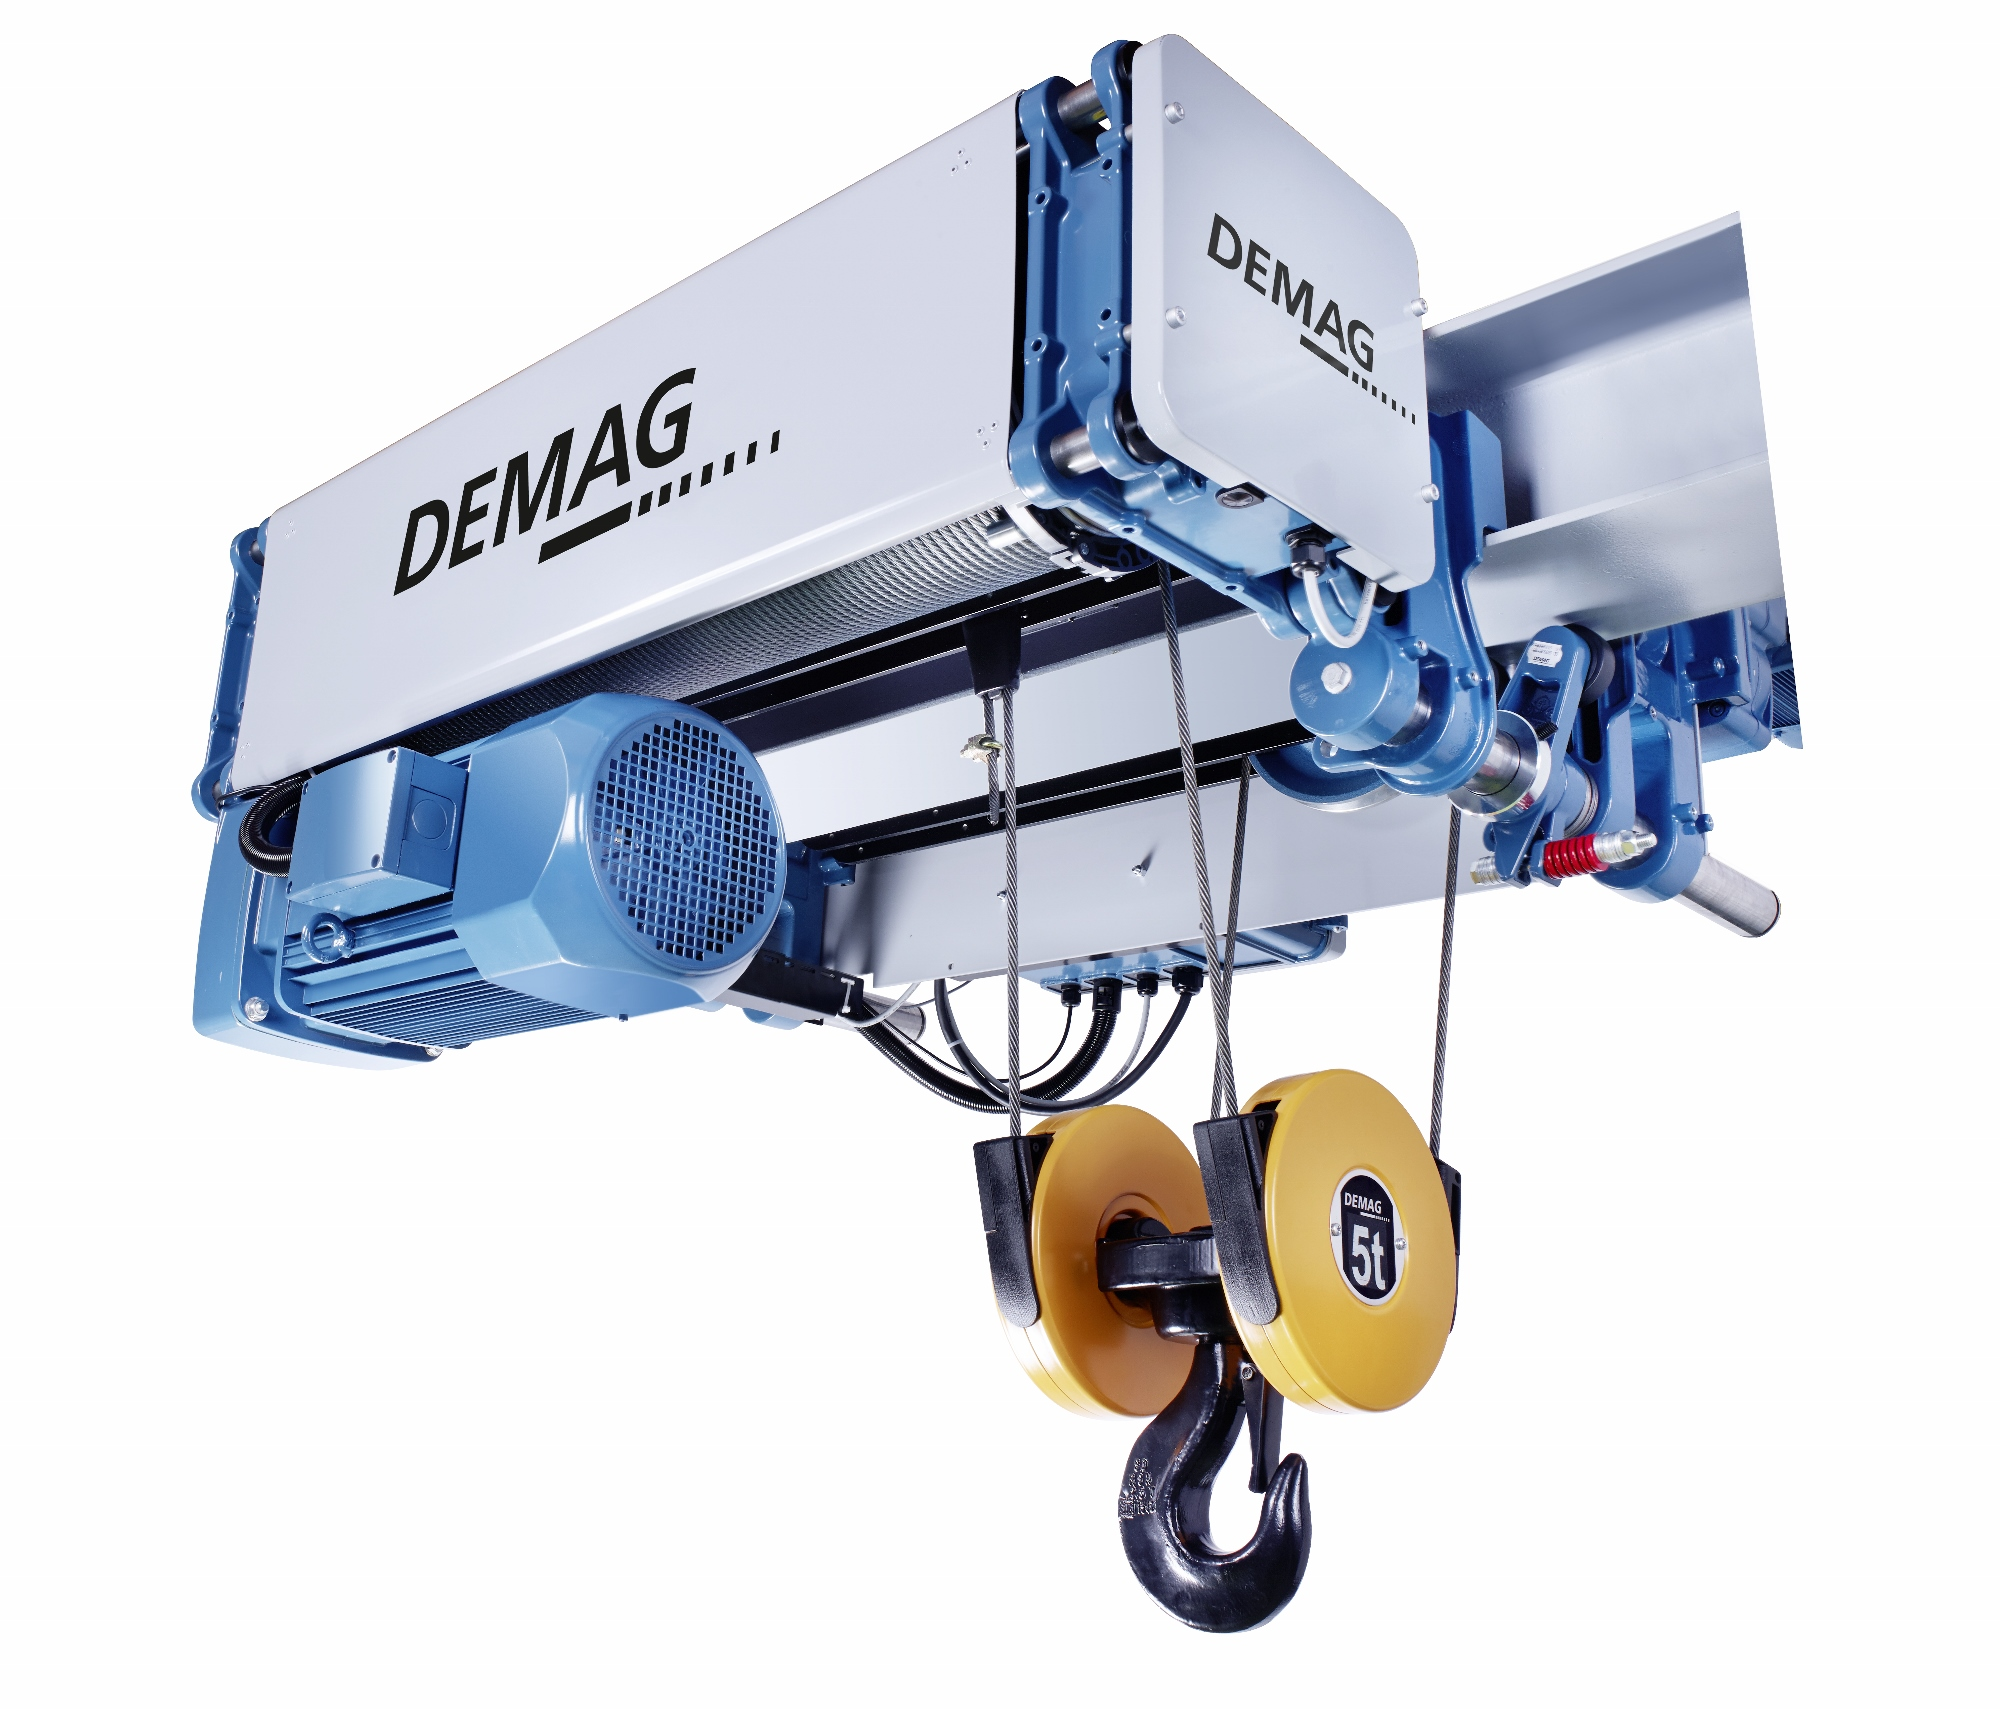 demag launches dmr modular rope hoist for diverse. Black Bedroom Furniture Sets. Home Design Ideas